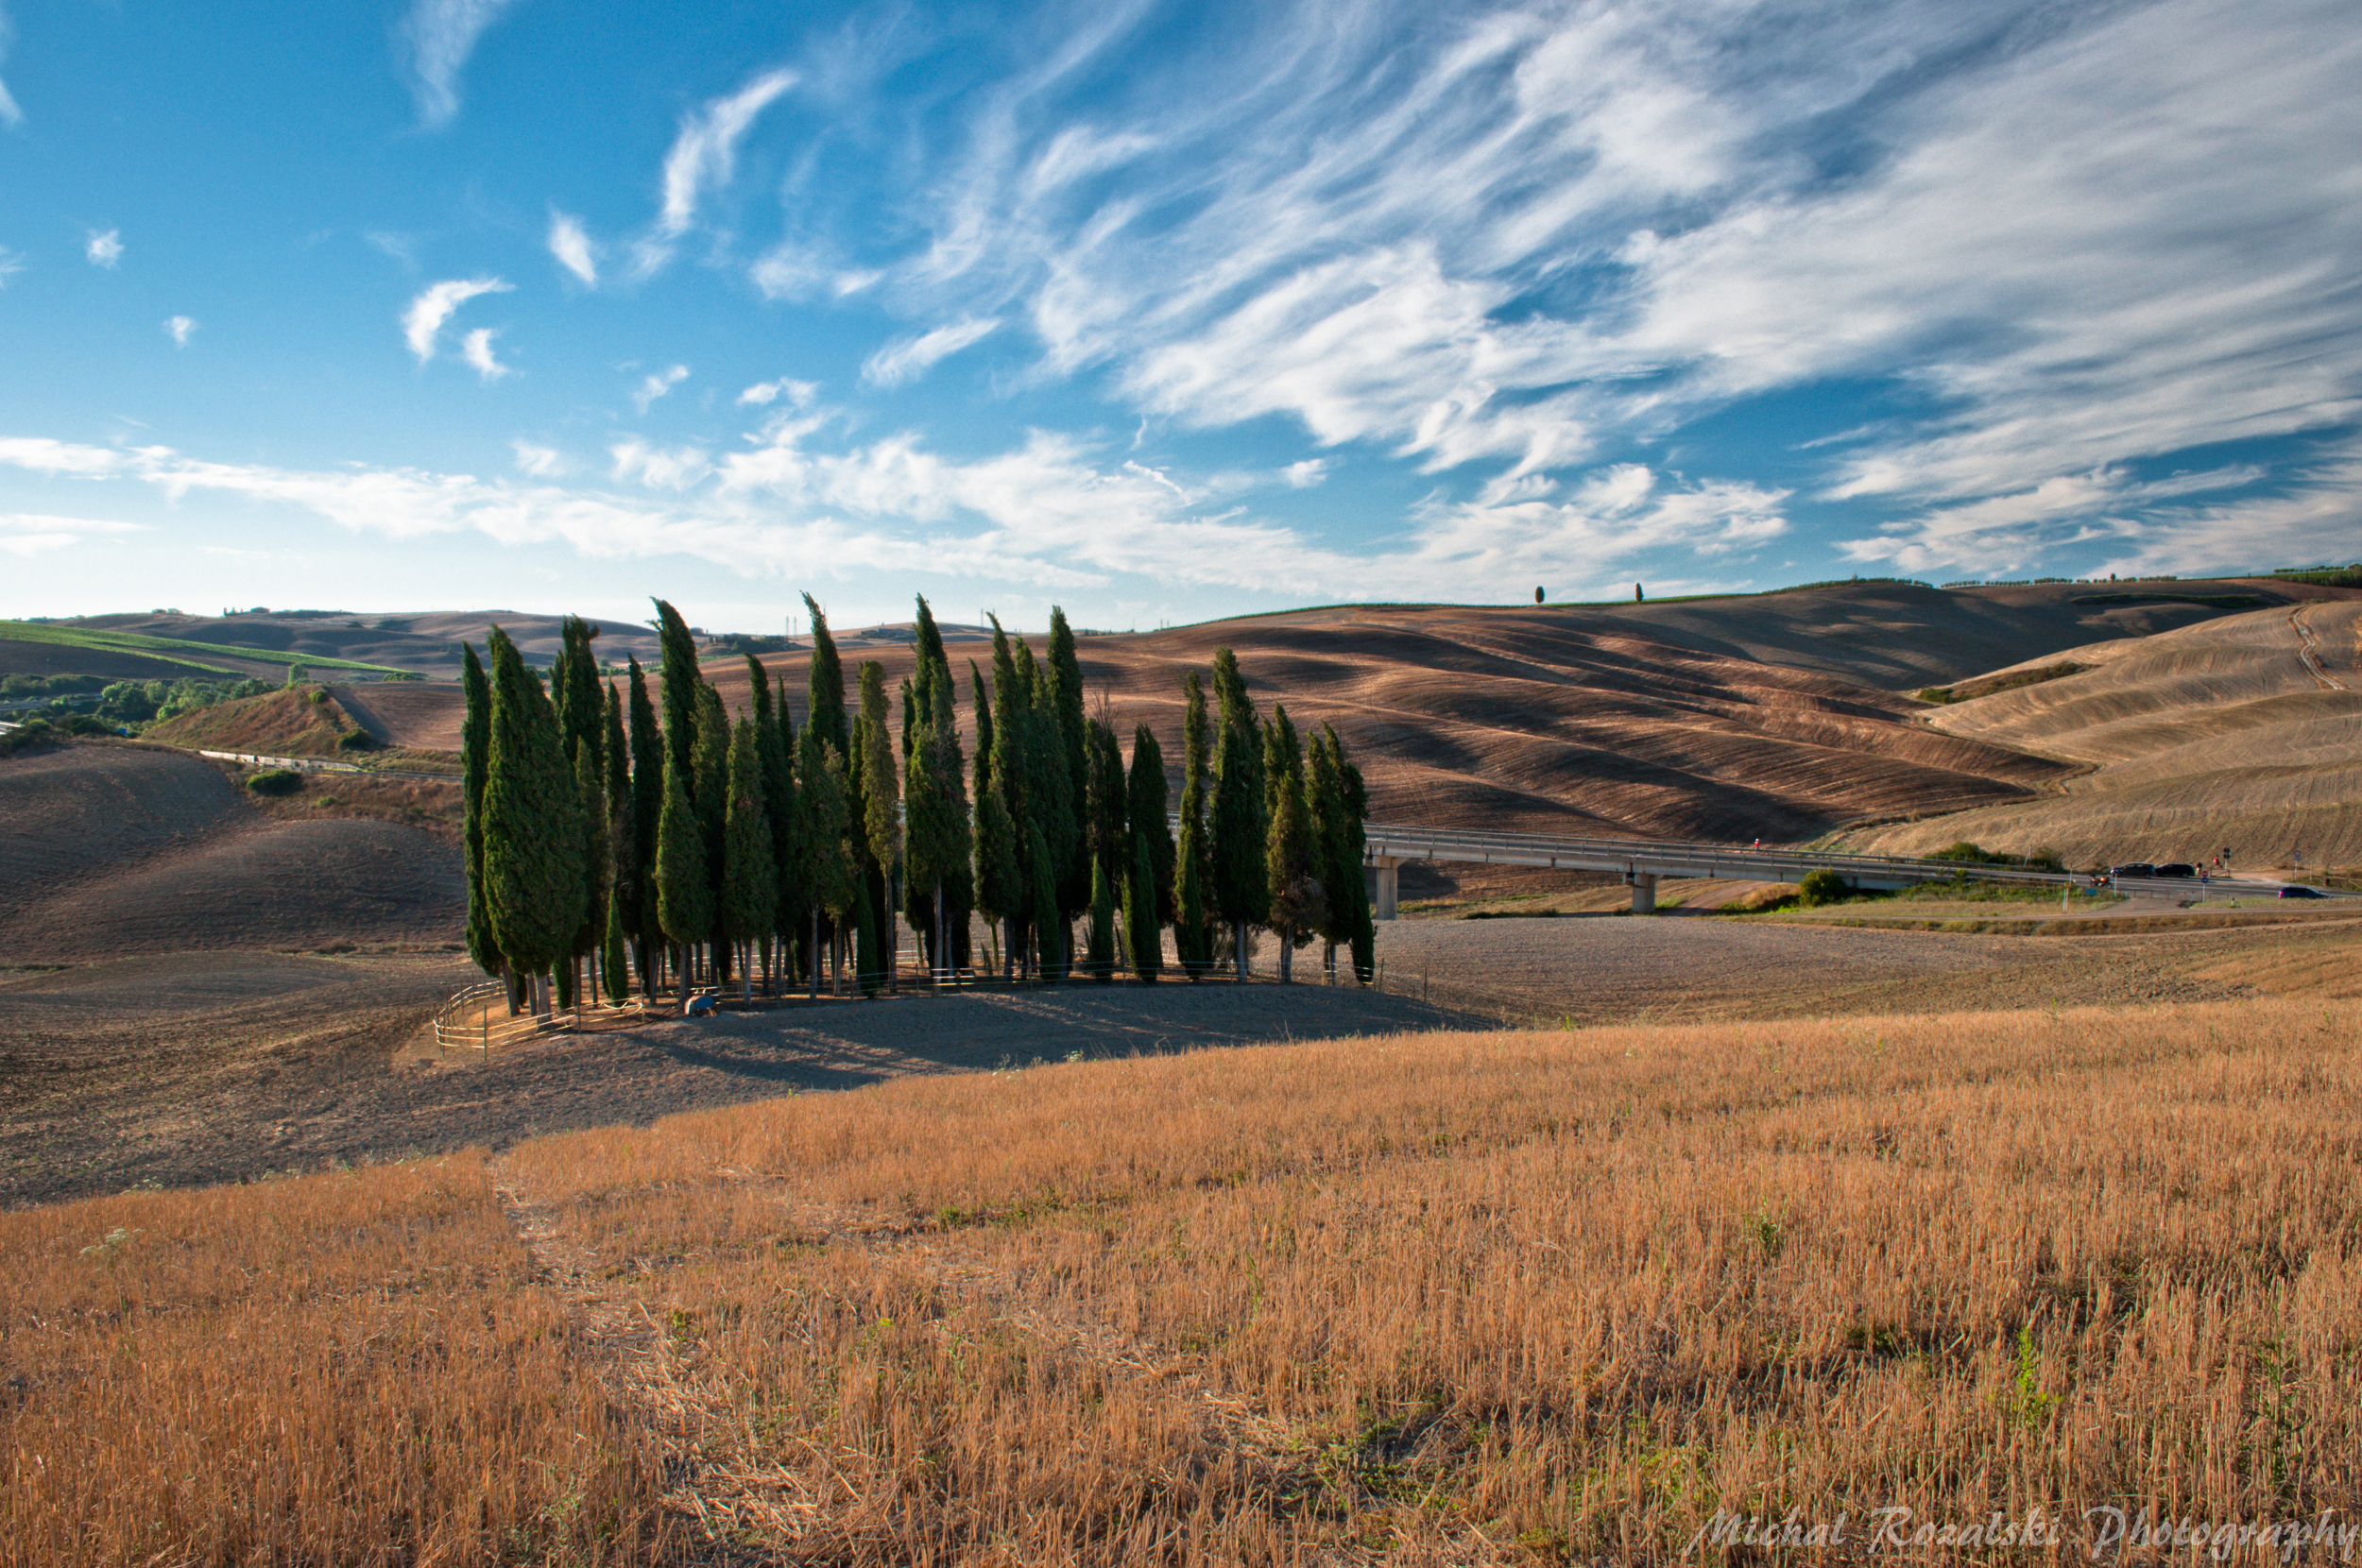 cypresses, ,hills, ,italy, ,tuscany, ,sky, ,clouds, ,harvest, ,summer, ,trees, ,landscapes, Michal Rozalski